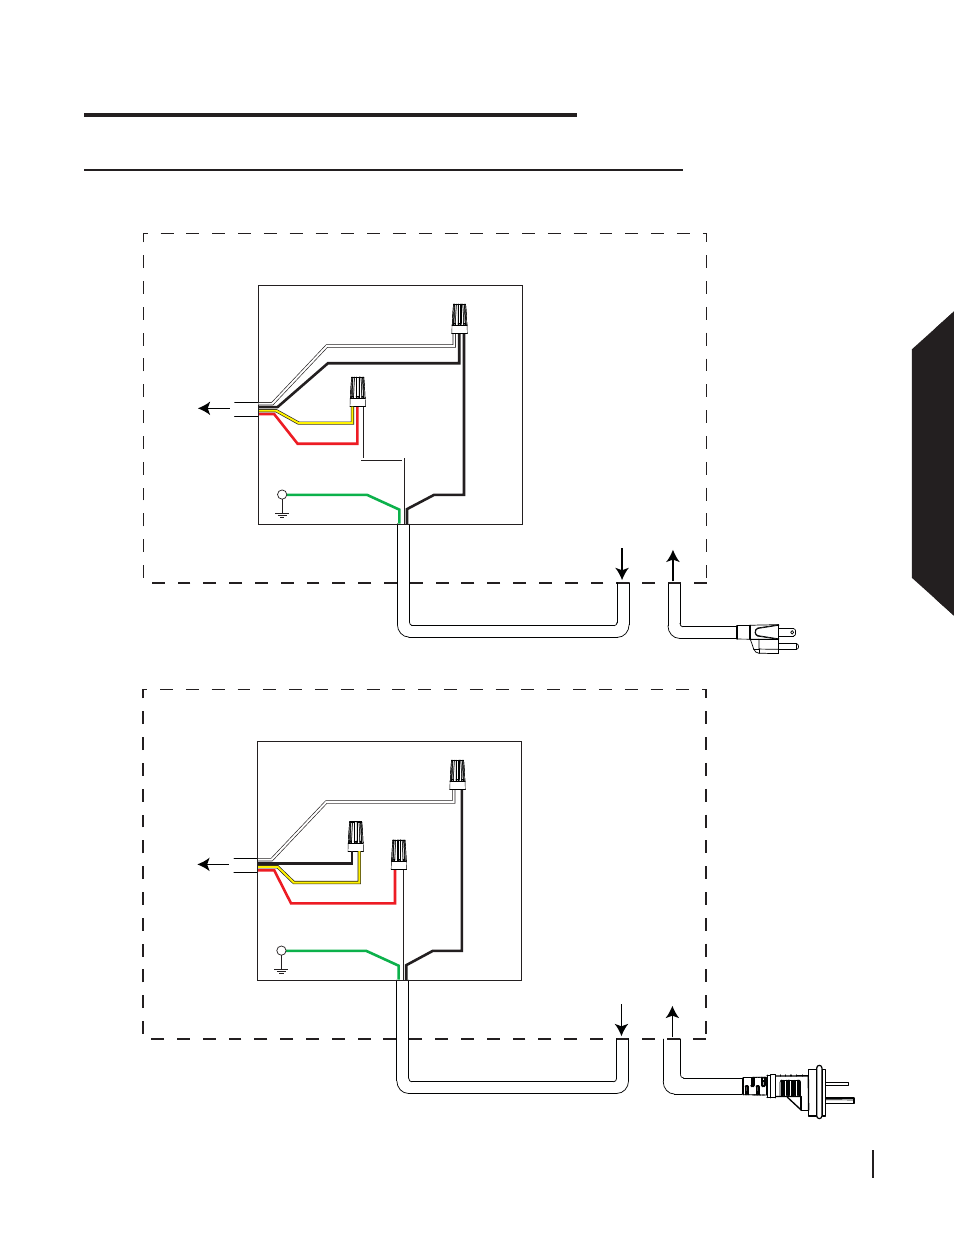 [SCHEMATICS_4CA]  30646D Delta Rockwell Table Saw Motor Wiring Diagram | Wiring Library | Delta Trailer Wiring Diagram |  | Wiring Library